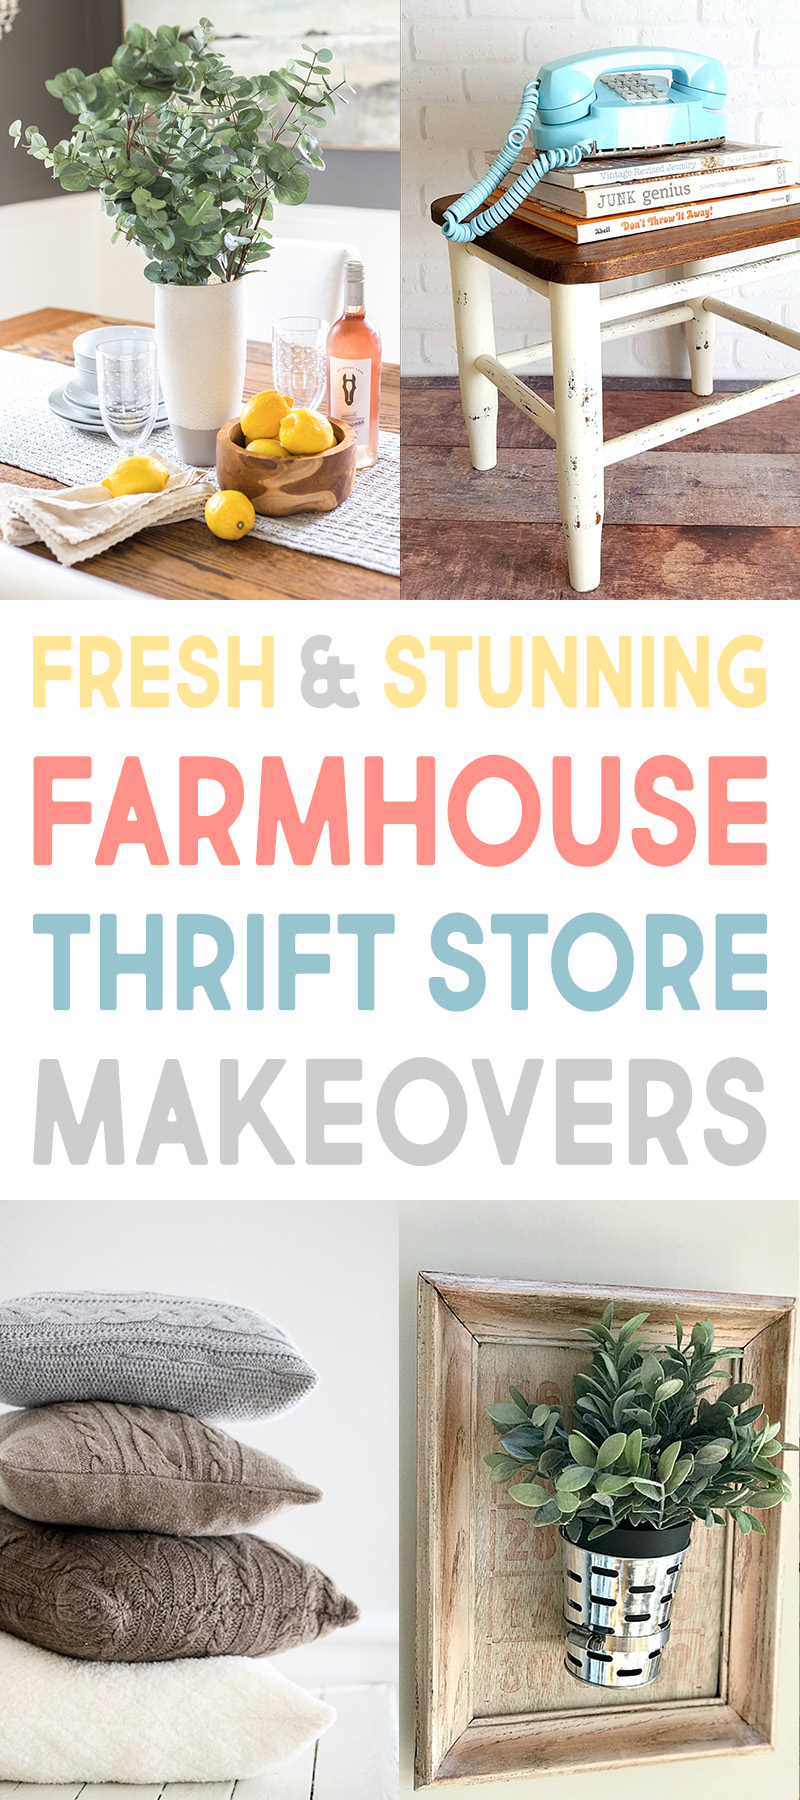 Fresh and Stunning Farmhouse Thrift Store Makeovers that will make your home SMILE! Tons of DIYS and tons of inspiration awaits you!